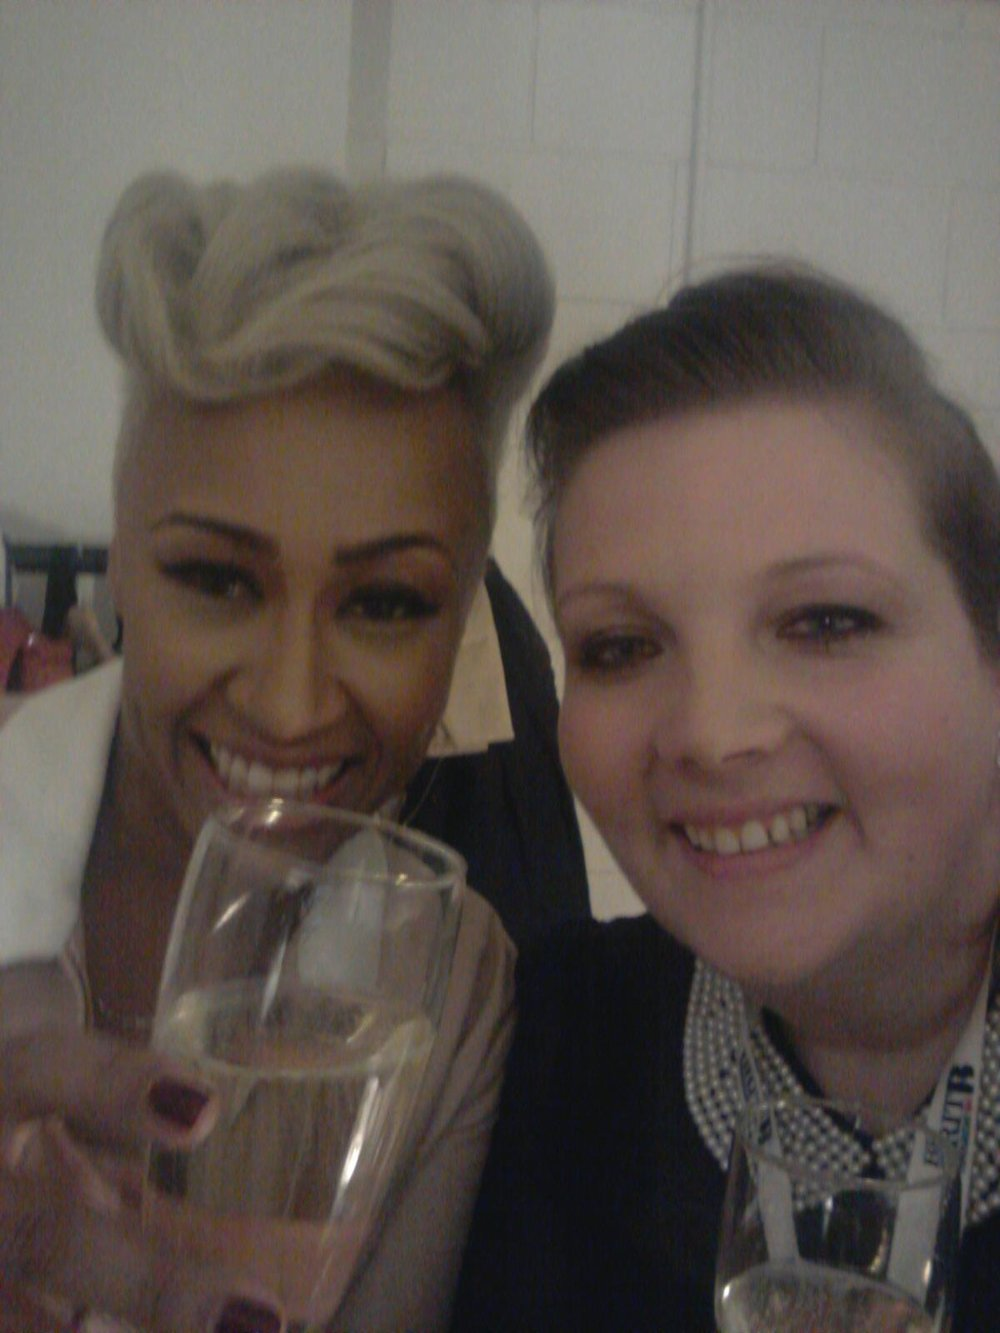 Emeli Sandé at the Brit Awards